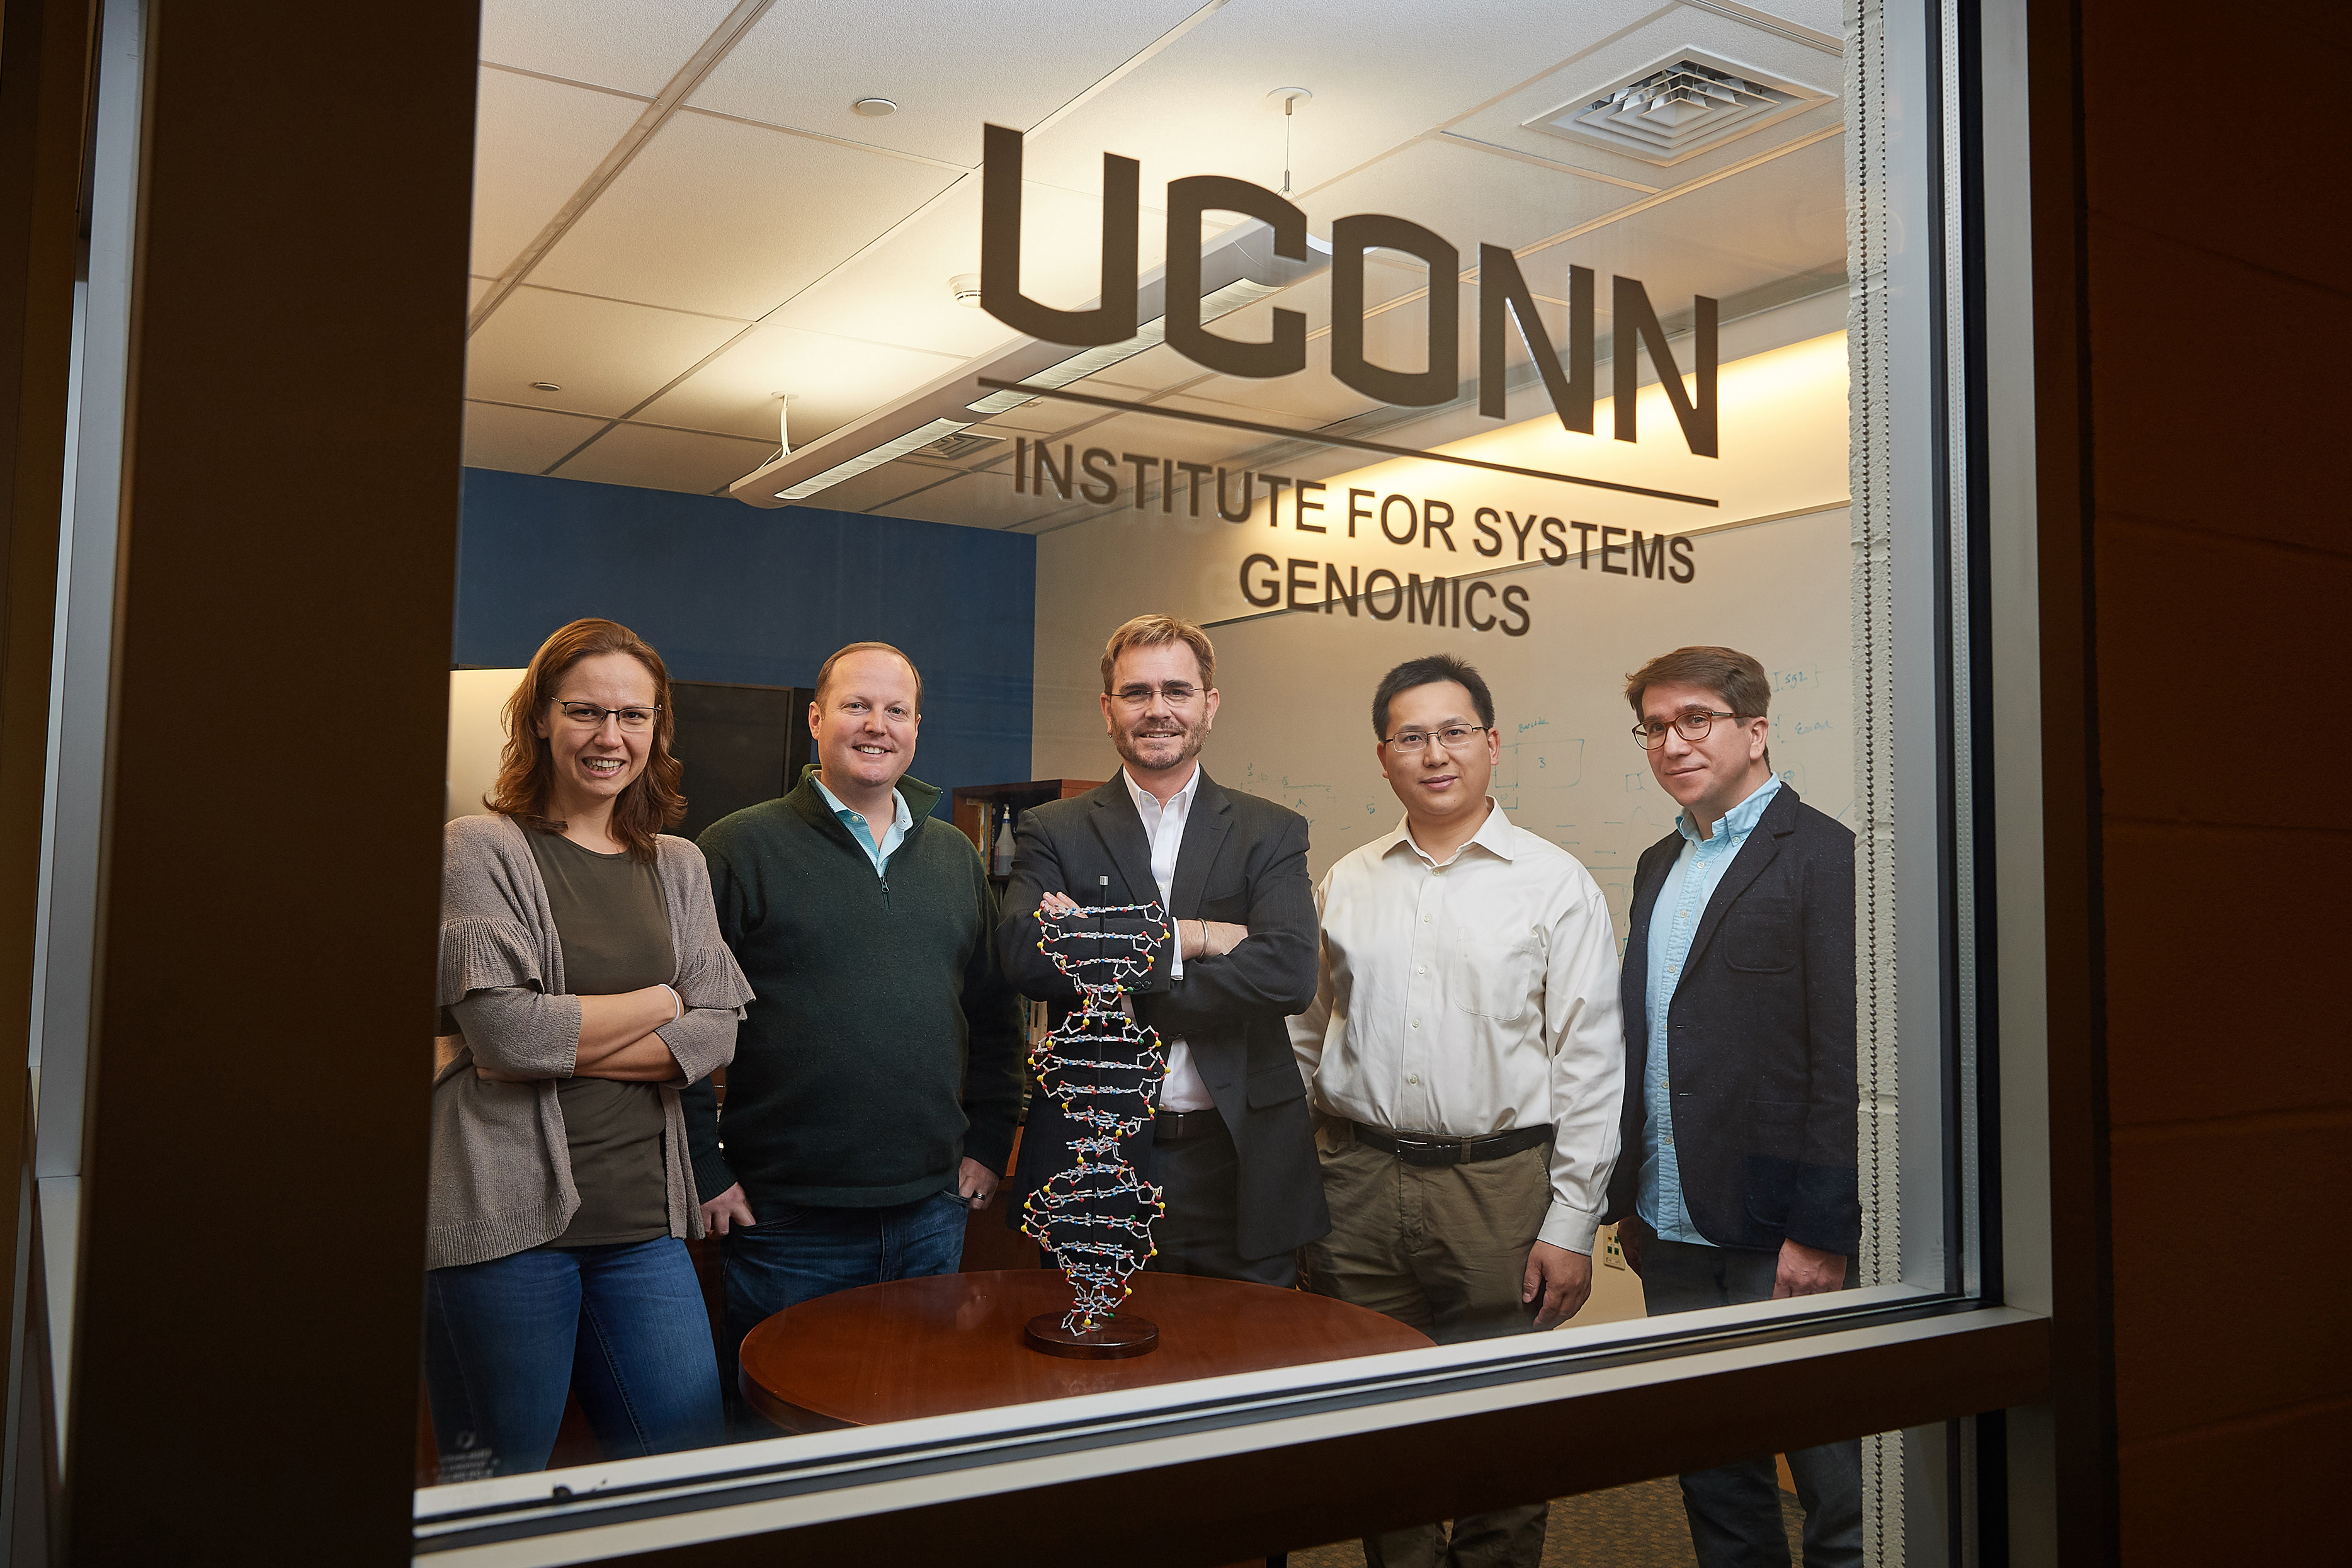 Five UConn Health researchers have won a new type of NIH grant designed to foster innovation and risk-taking in basic medical research. From left, Duygu Ucar, Justin Cotney, Brenton Graveley, Zhengqing Oyang, and Stefan Pinter, at the Cell and Genome Sciences Building in Farmington. (Peter Morenus/UConn Photo)